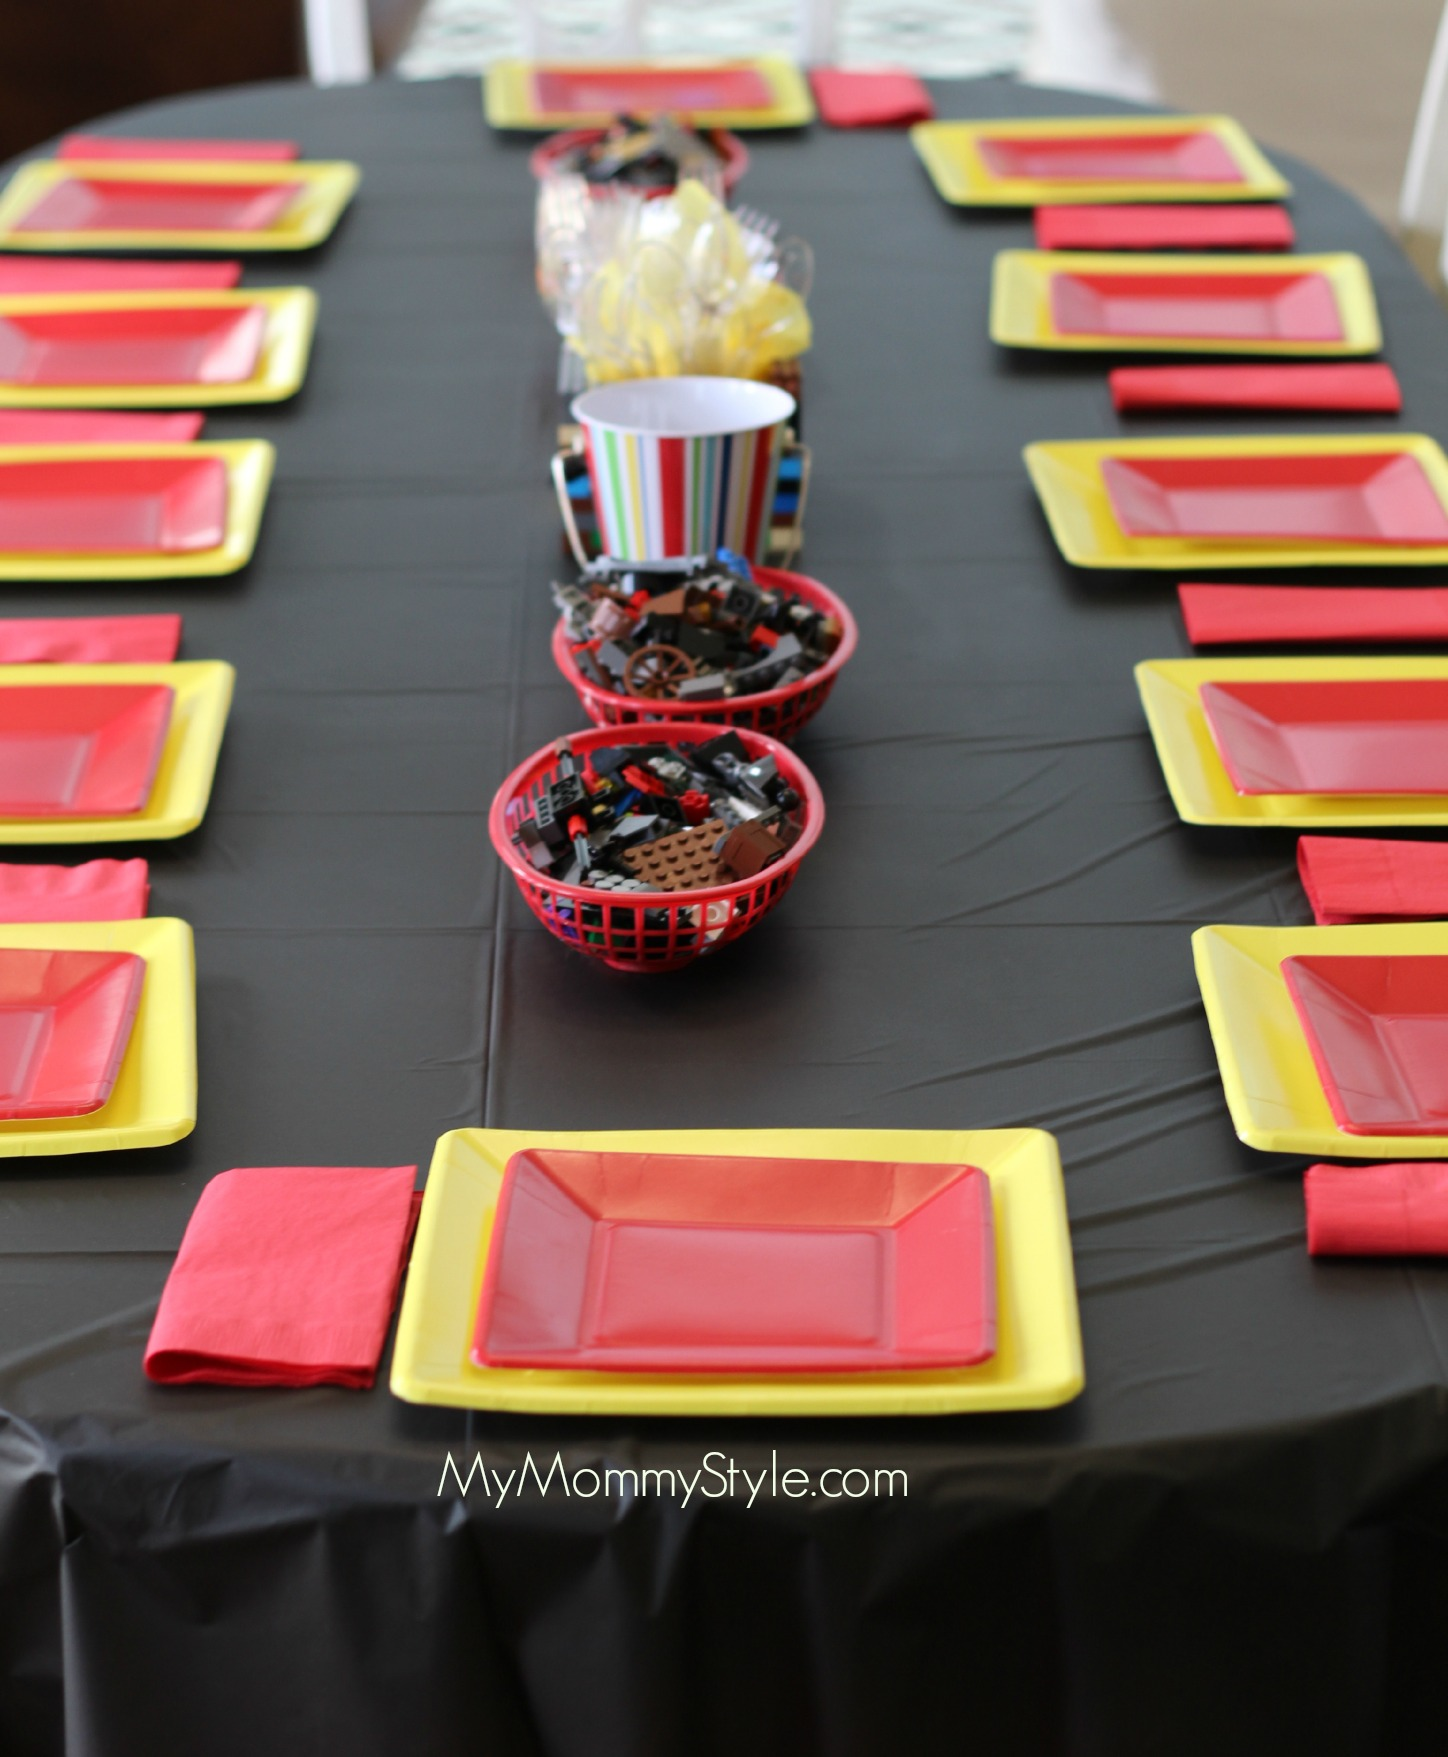 Lego Party, lego movie party, table, legos, mymommystyle.com, legos, party table